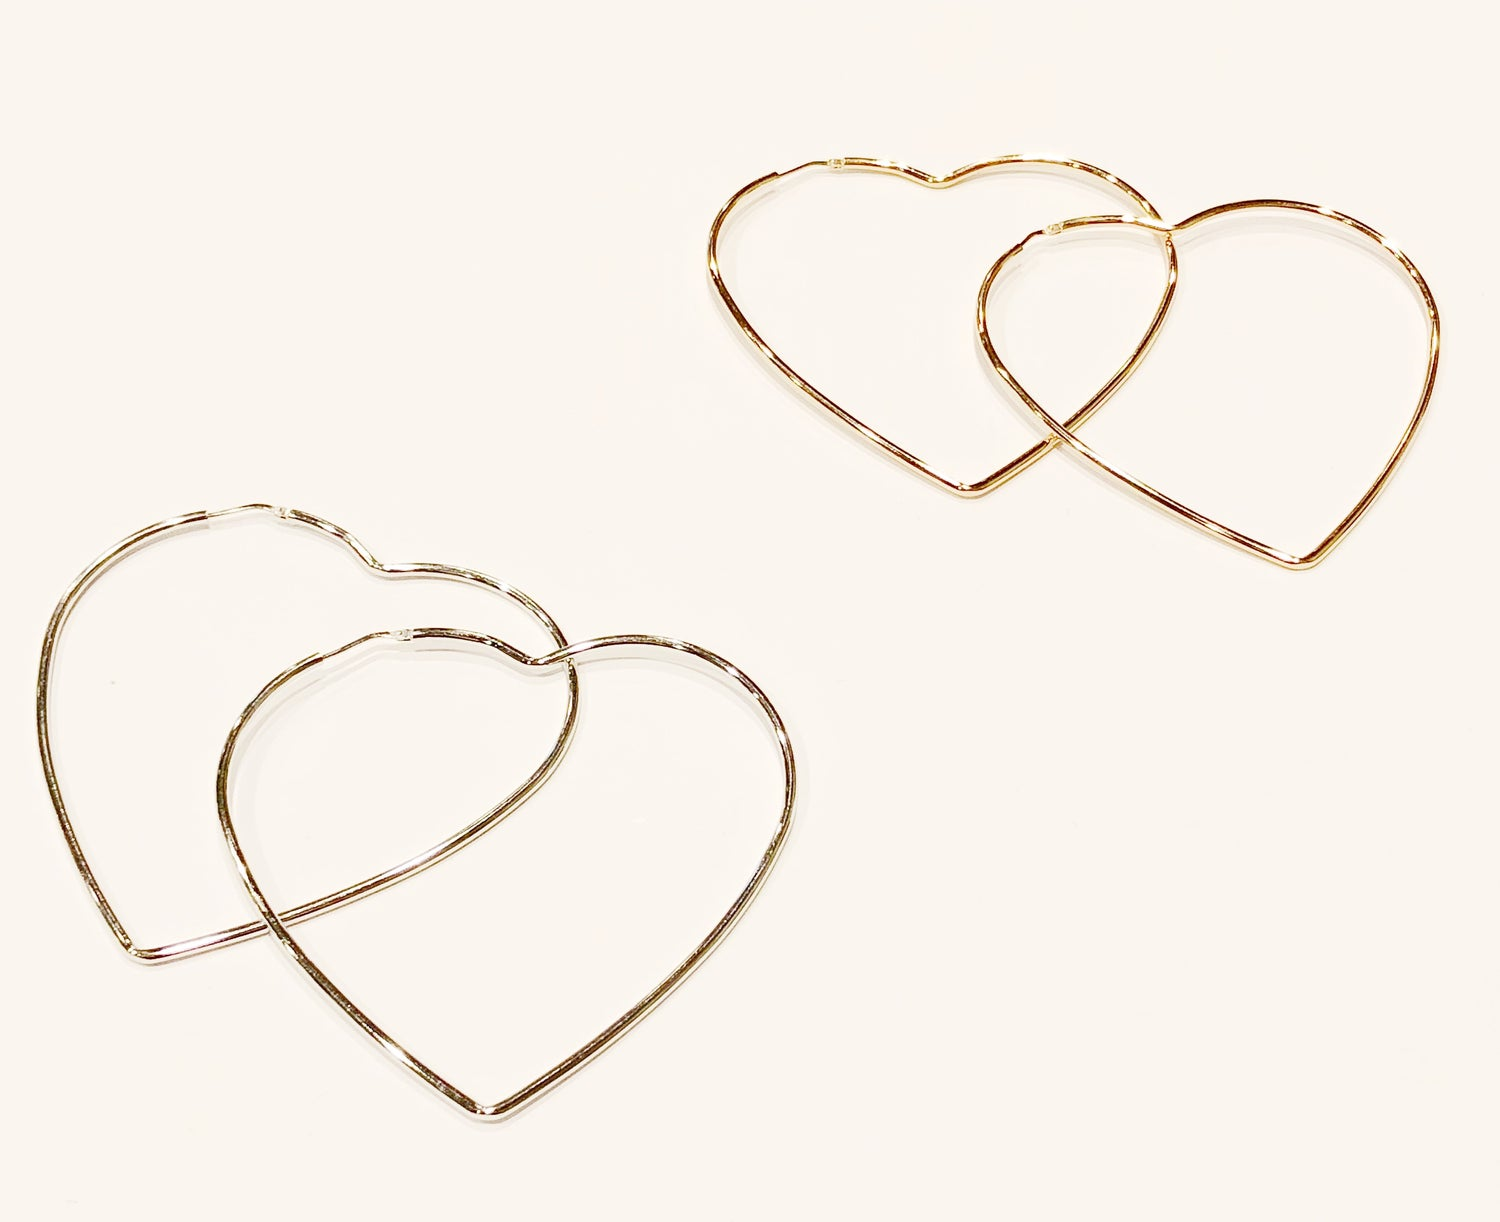 Image of 925 maxi hearts earrings